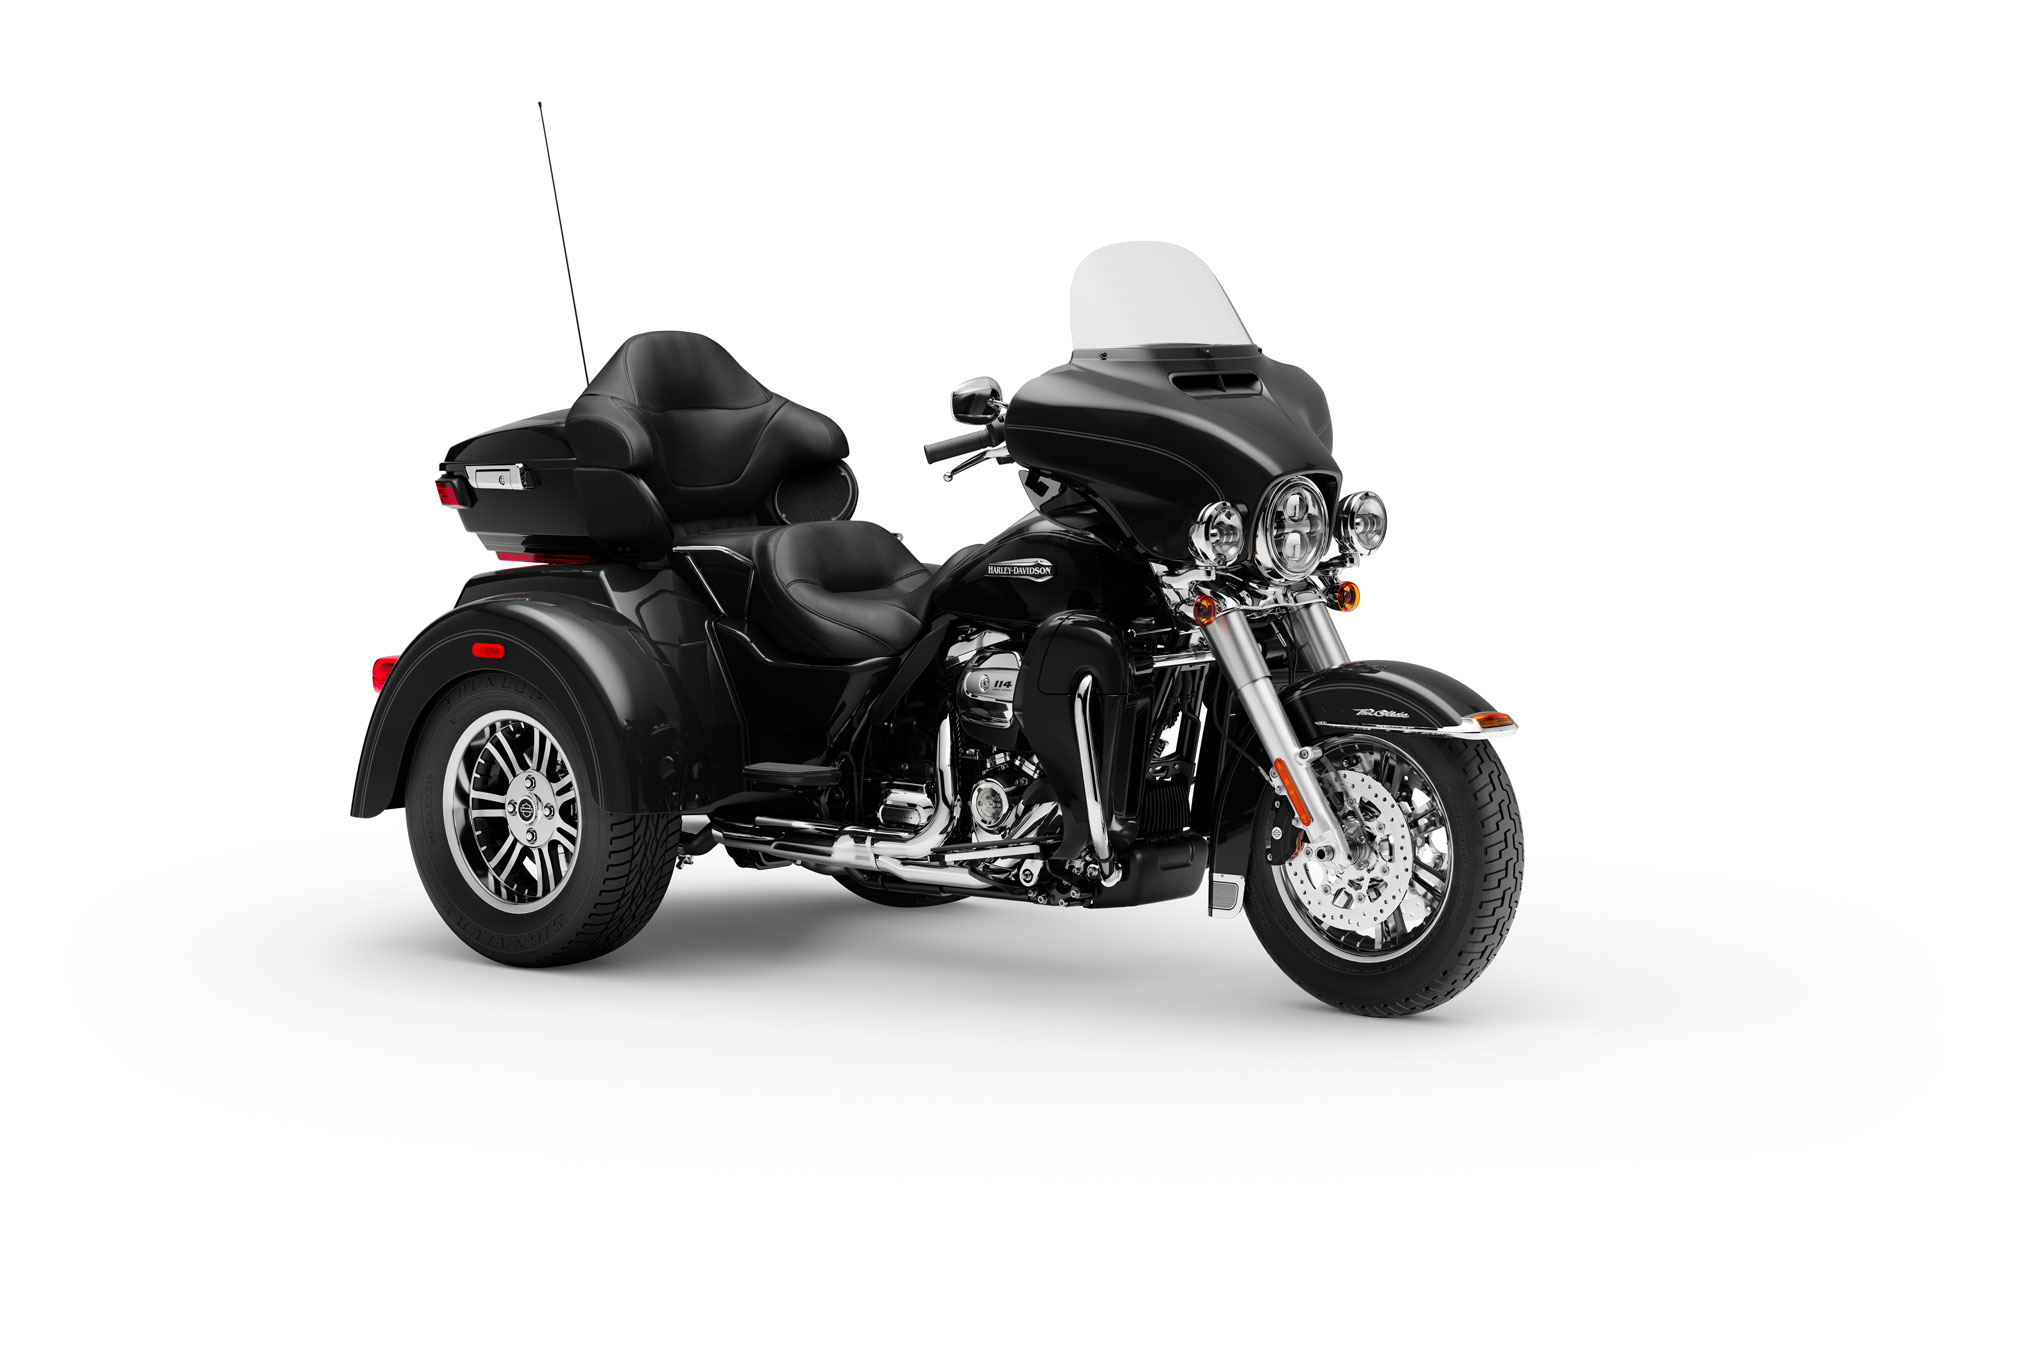 2019 Harley-Davidson Tri Glide Ultra Guide • Total Motorcycle on